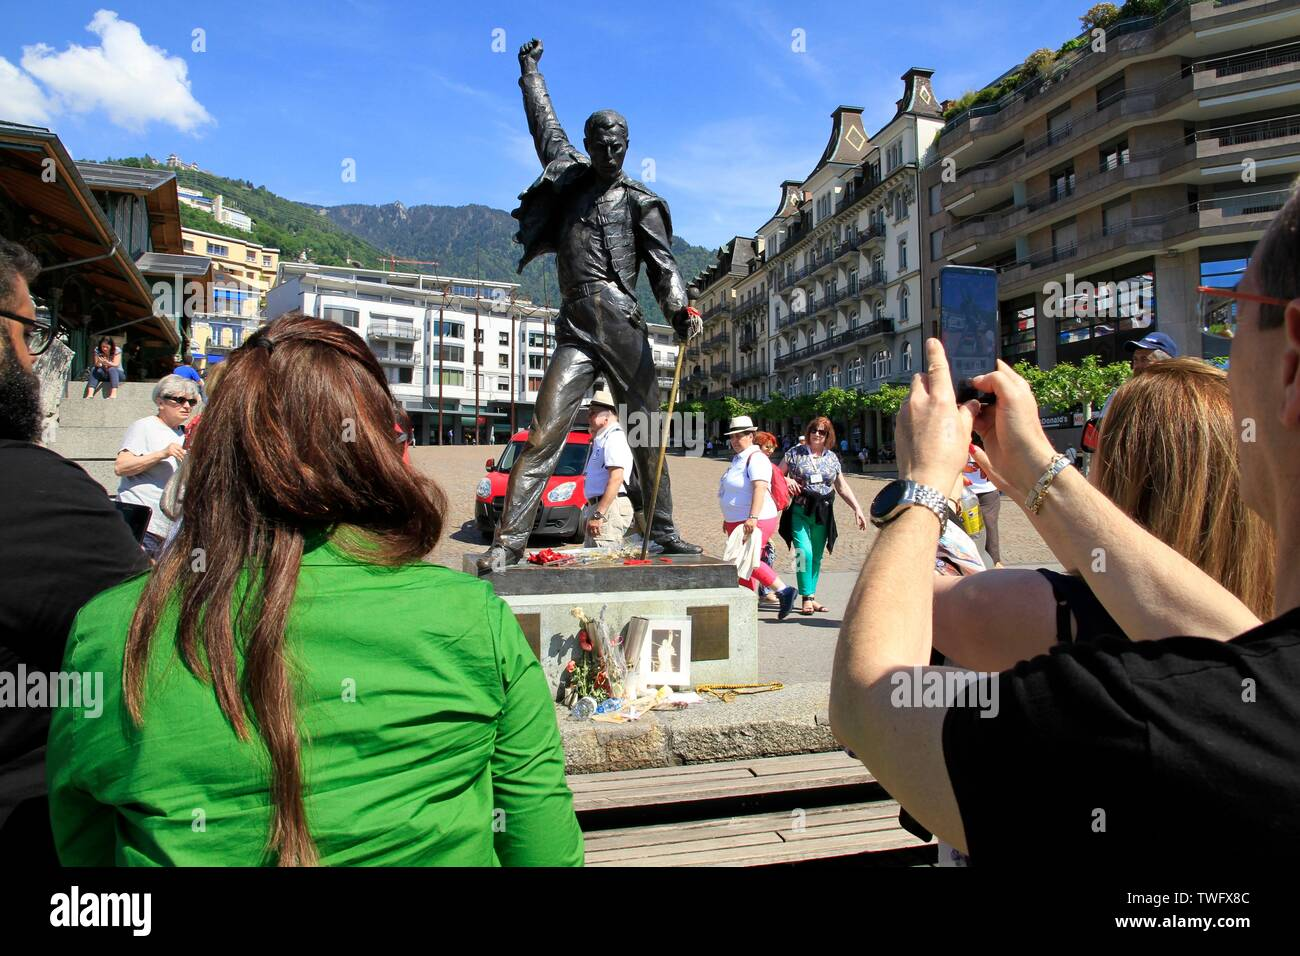 Statue of Freddie Mercury, singer of the group Queen, in Montreux which is a Swiss commune of the canton of Vaud Stock Photo